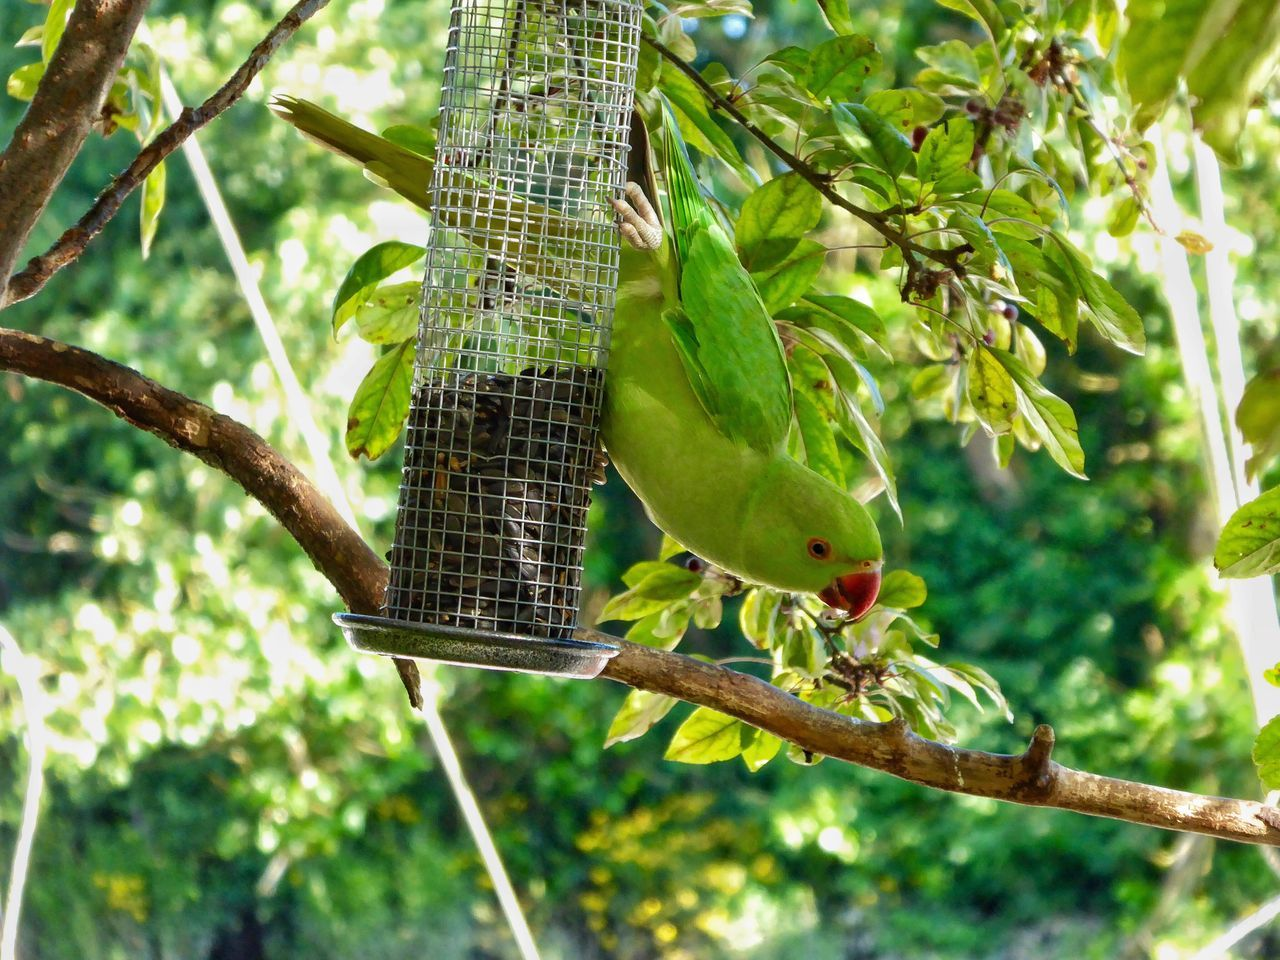 Parakeet Parakeets Rose Ringed Parakeets Rose-ringed Parakeet Rose-ringed Parakeets Bird Bird Photography Birds_collection Birdwatching